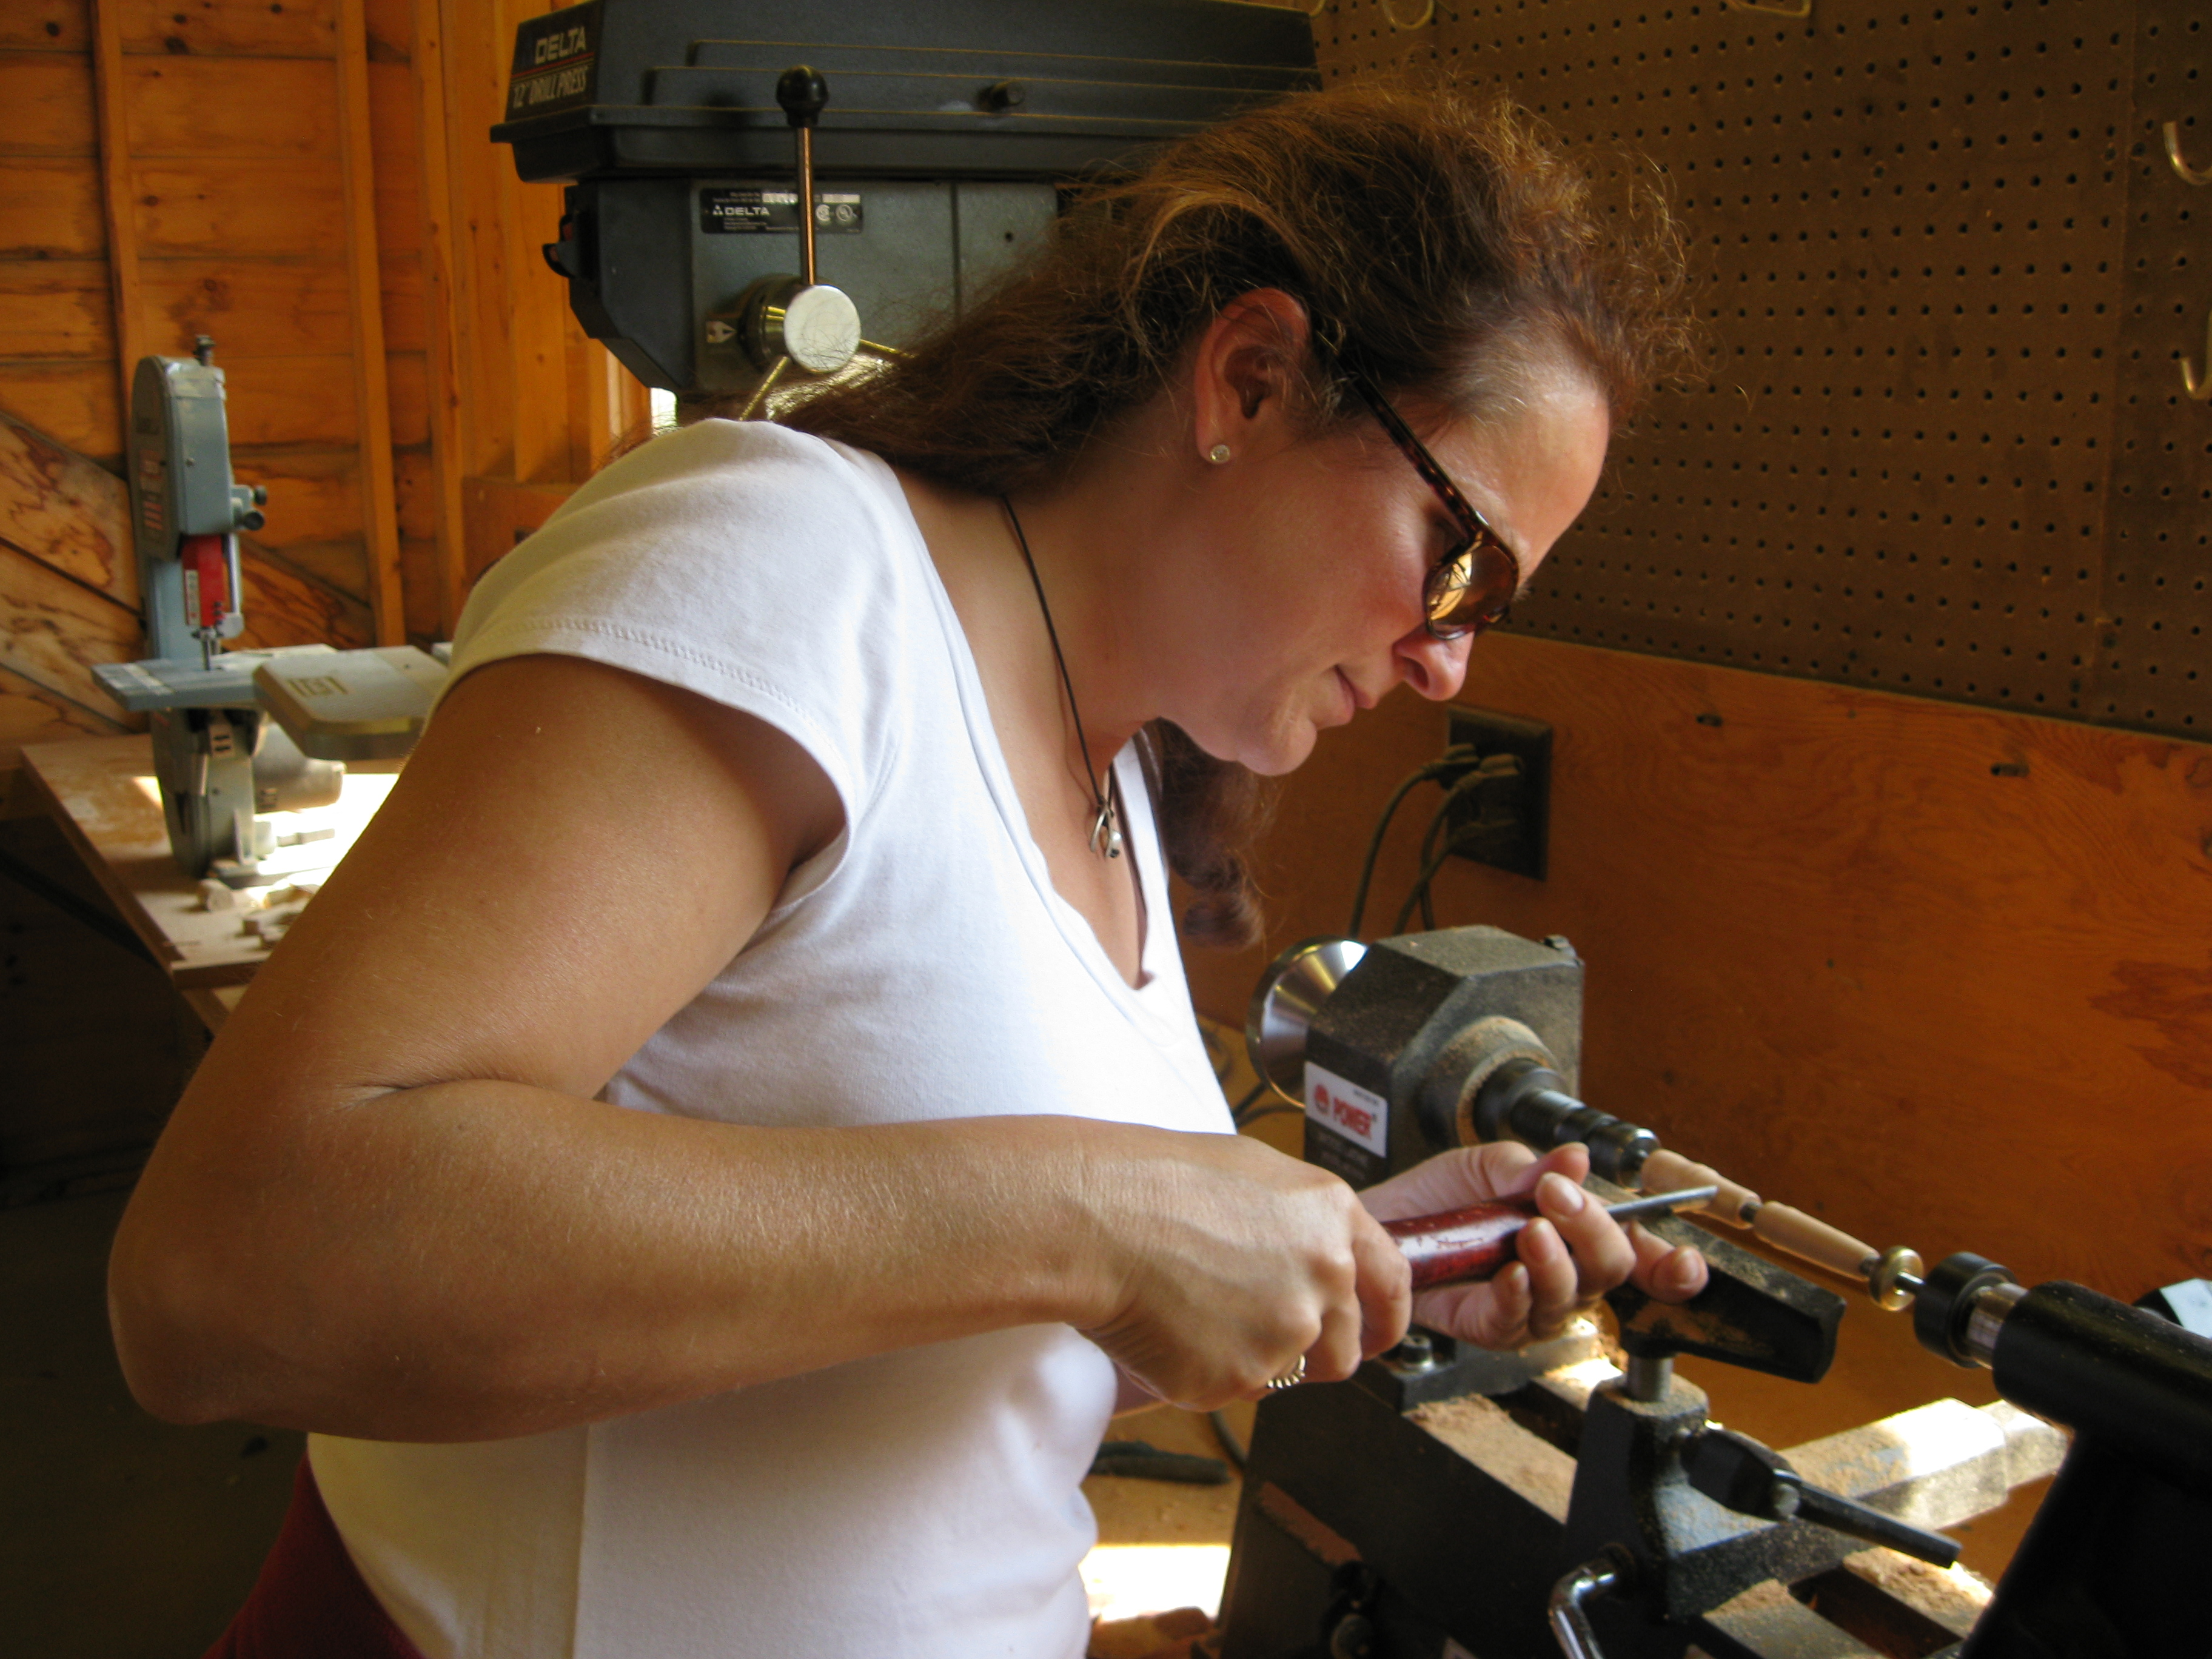 making a pen using the lathe